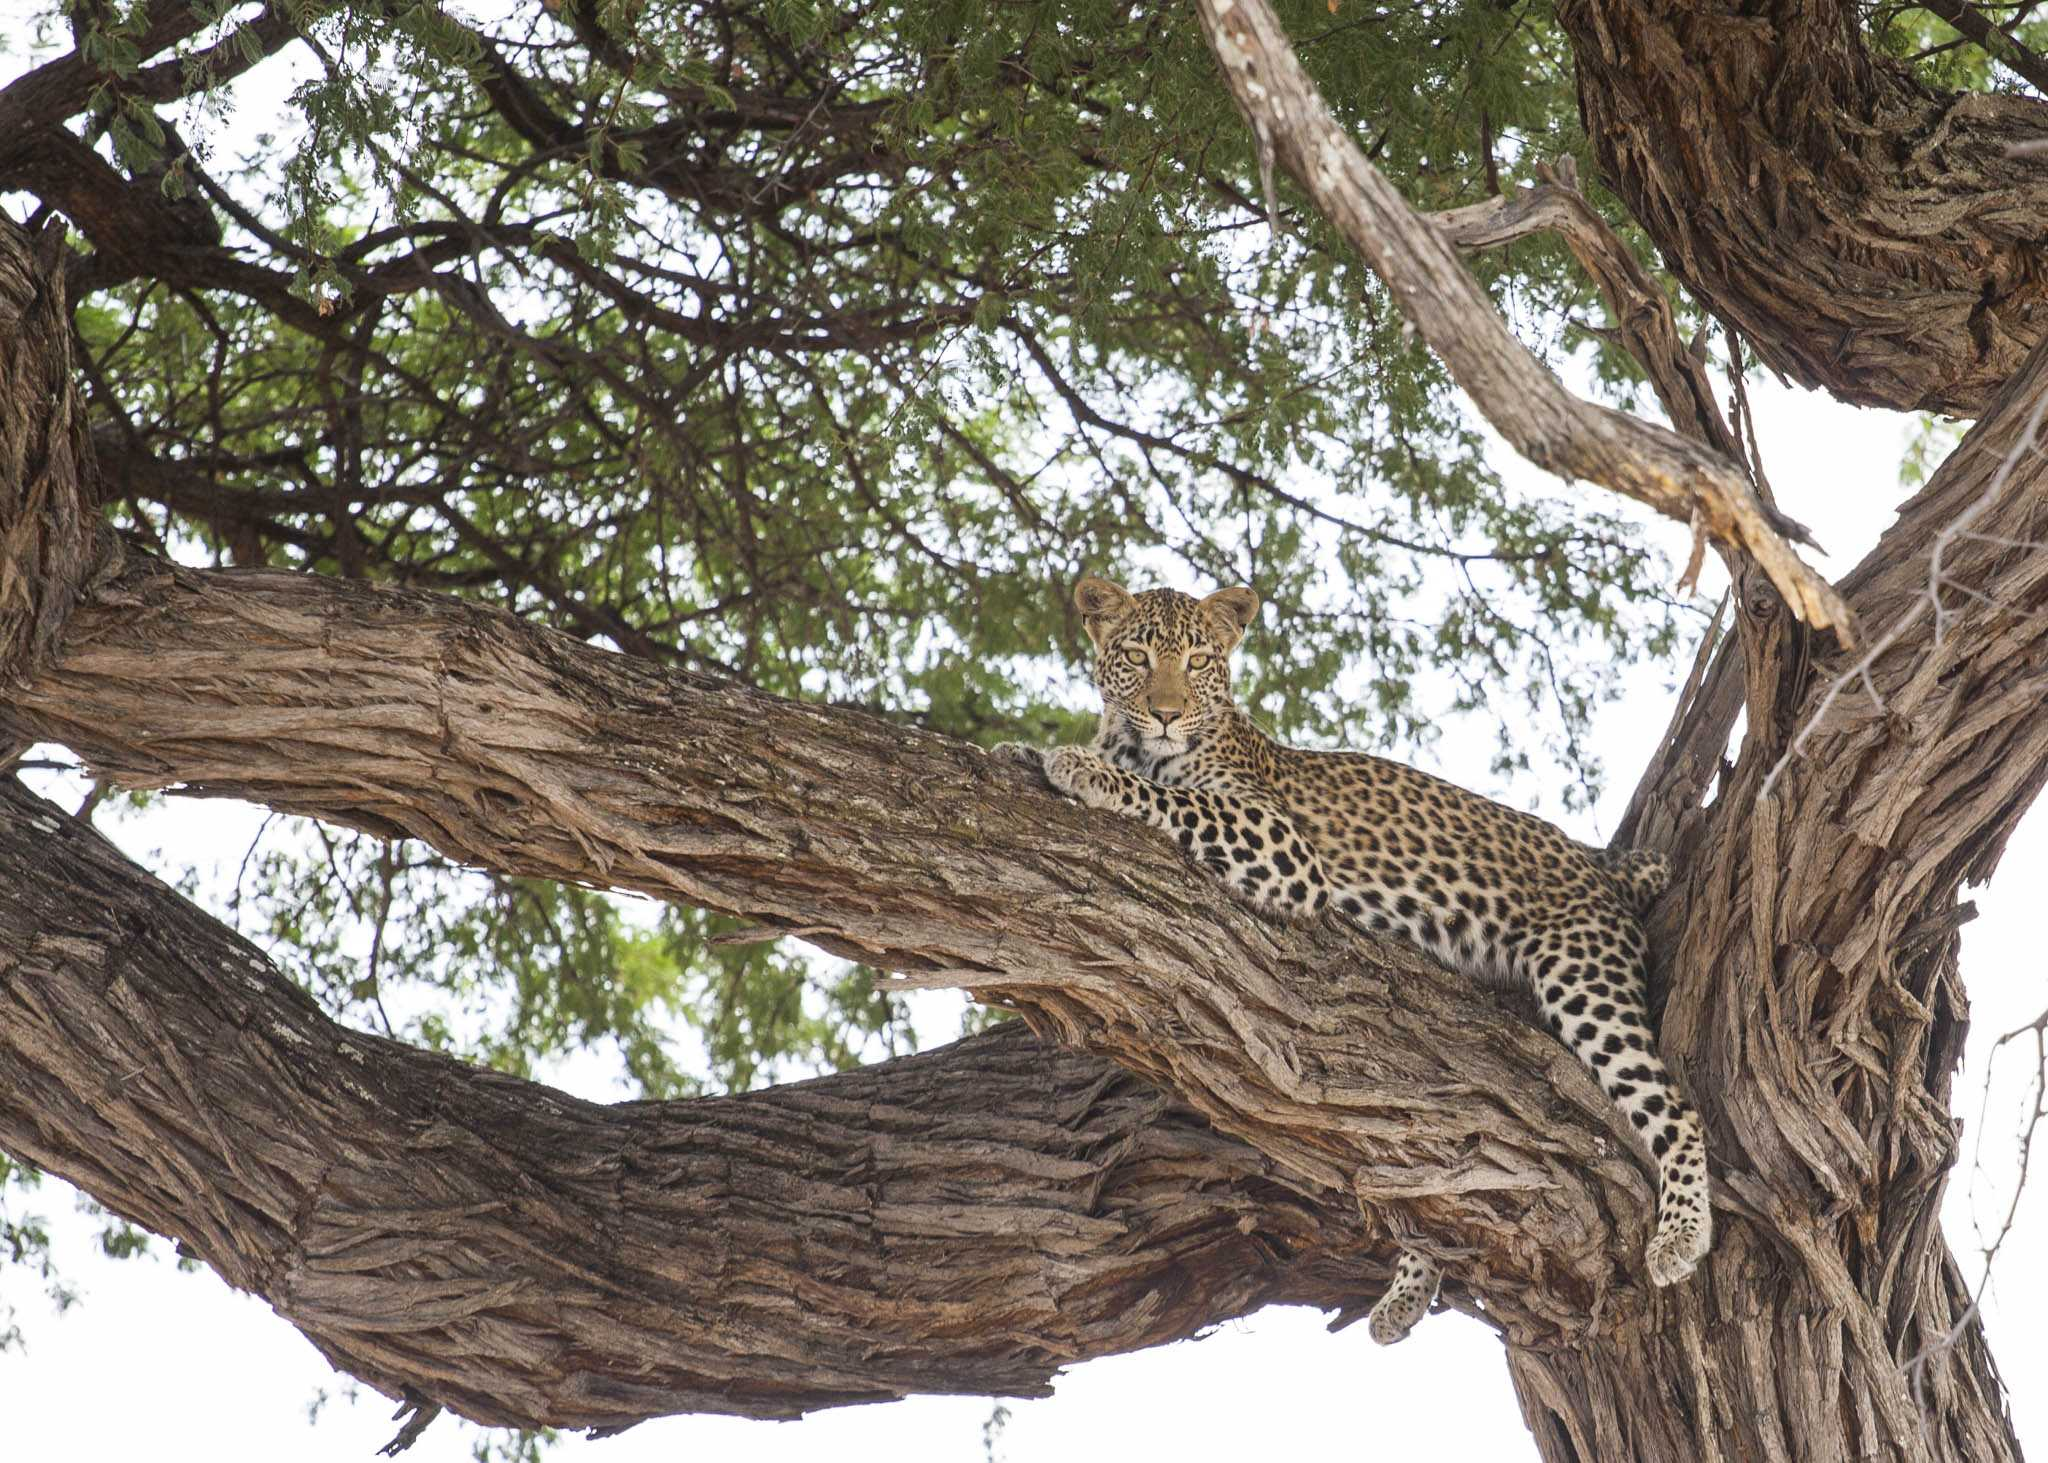 A leopard in a tree in Botswana